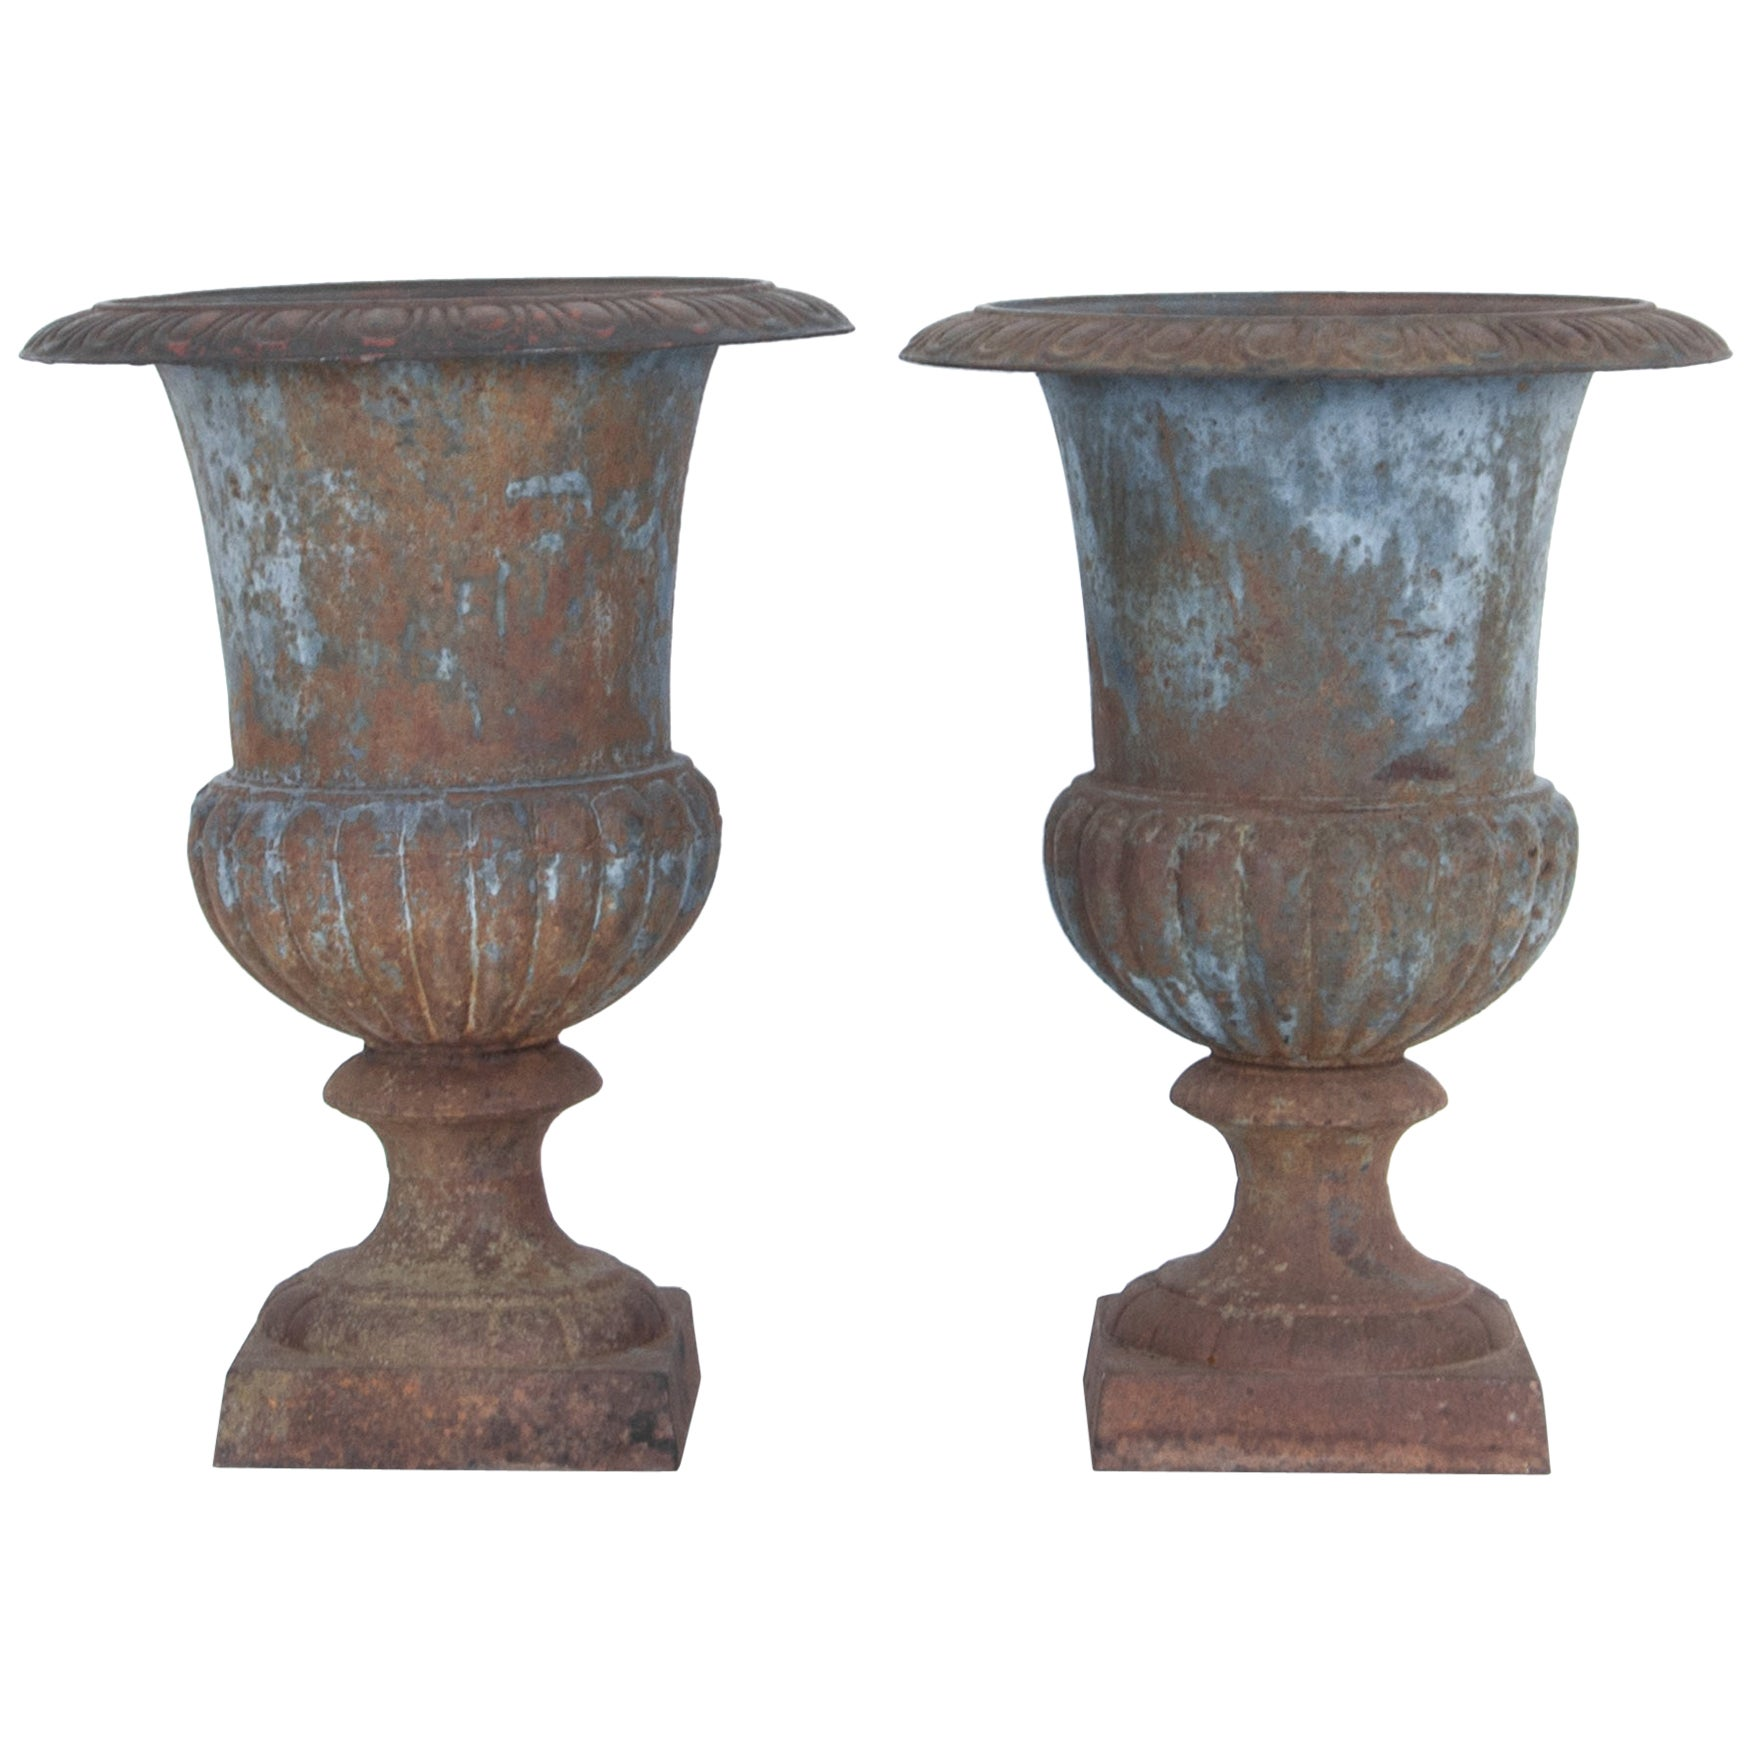 1920s French Cast Iron Urns, a Pair